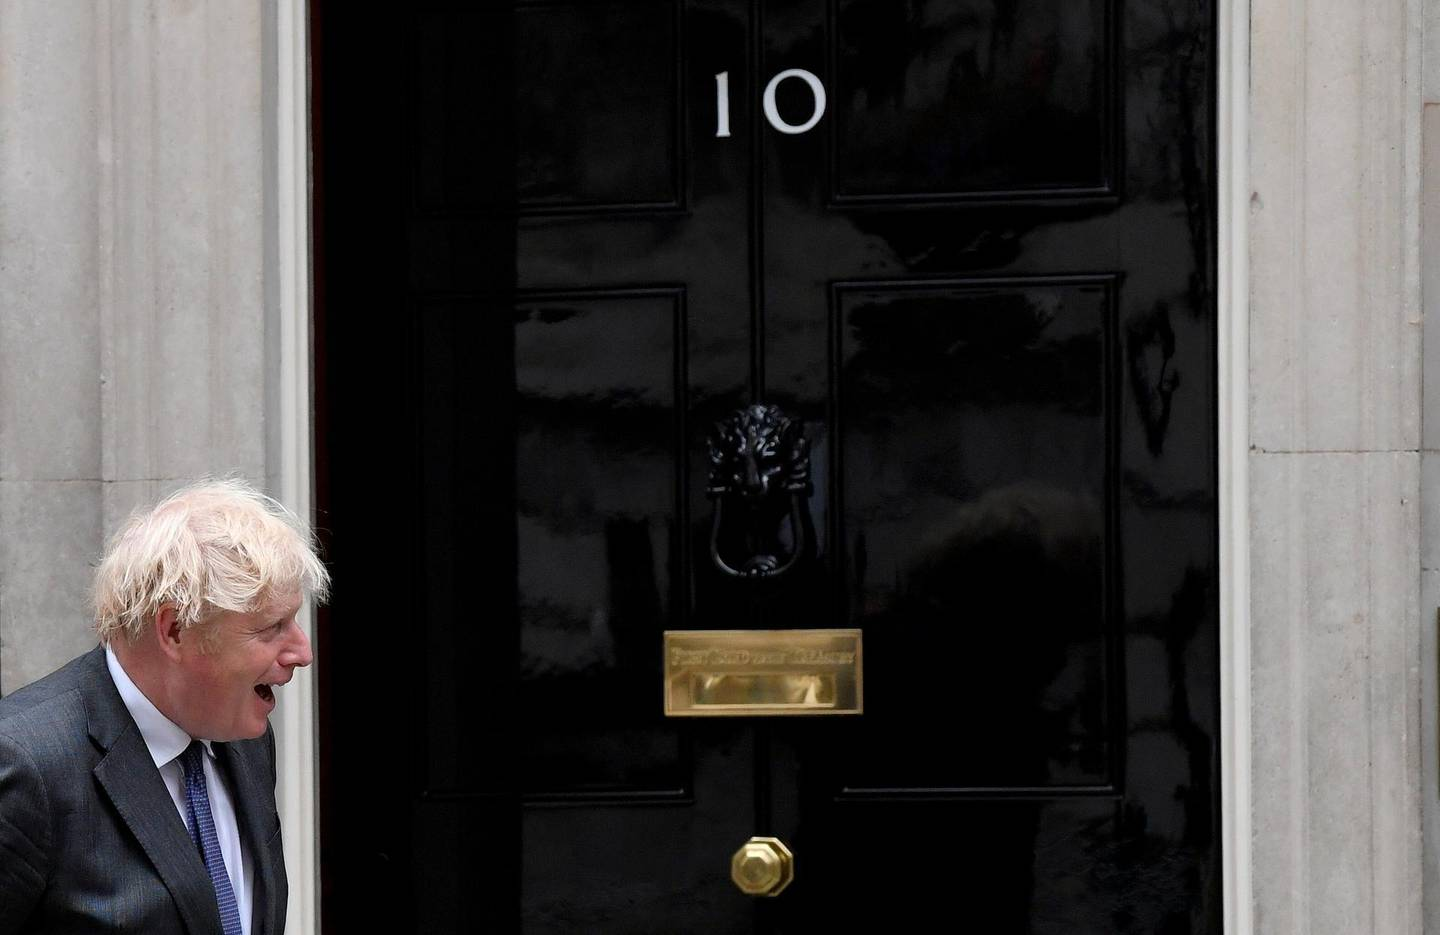 FILE PHOTO: Britain's Prime Minister Boris Johnson reacts in front of 10 at Downing Street, in London, Britain June 17, 2021. REUTERS/Toby Melville/File Photo